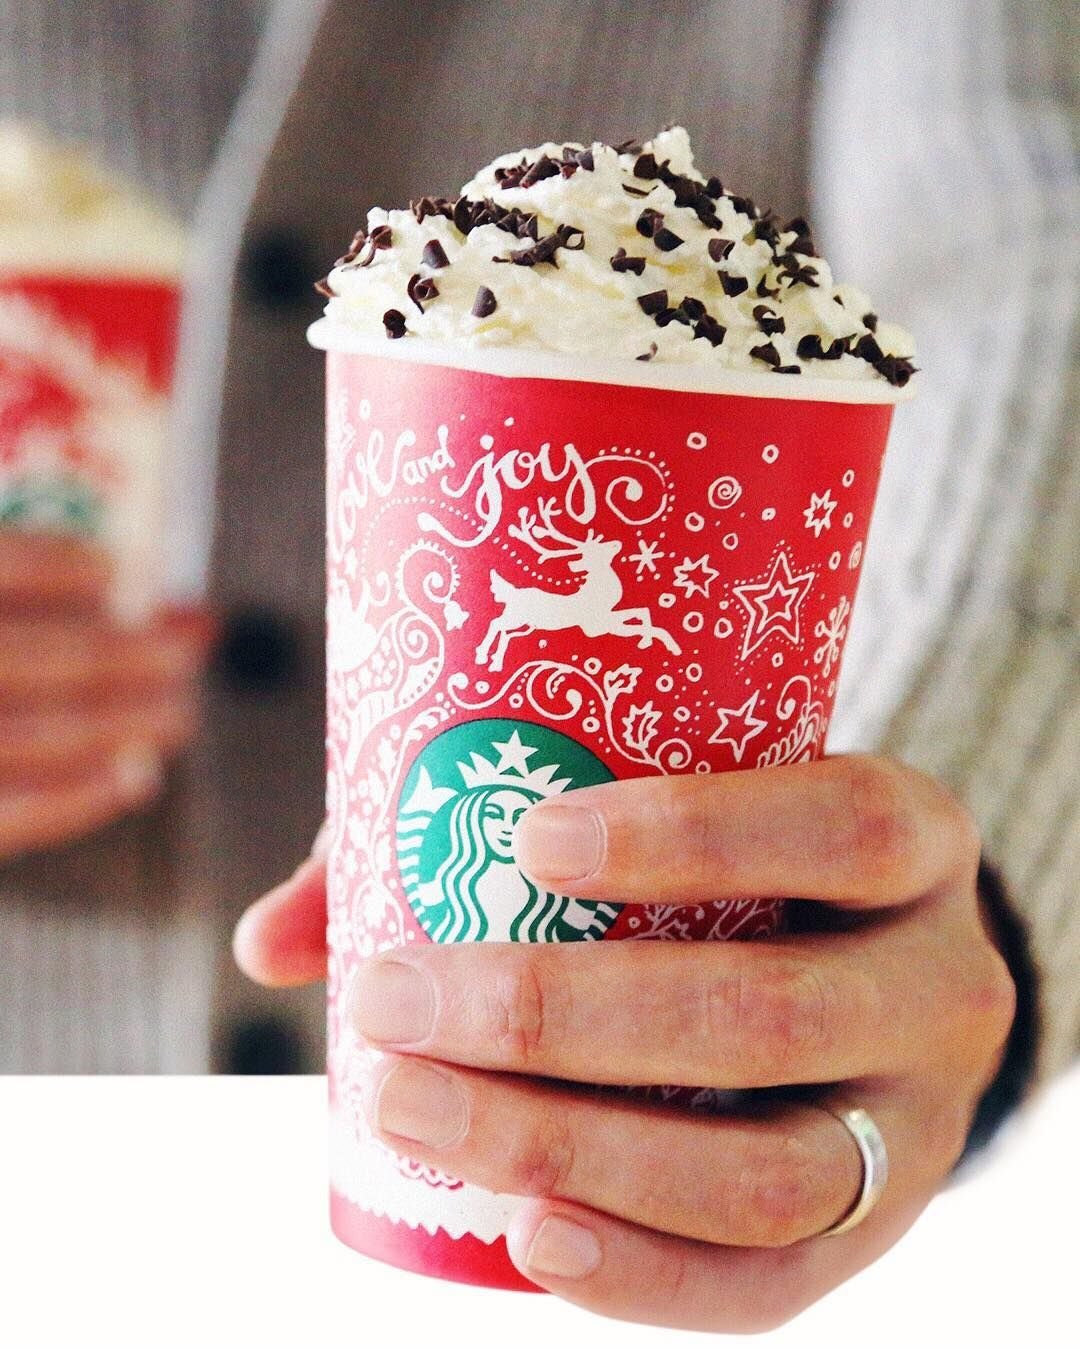 Starbucks coffee lovers now is your chance to get 100 in